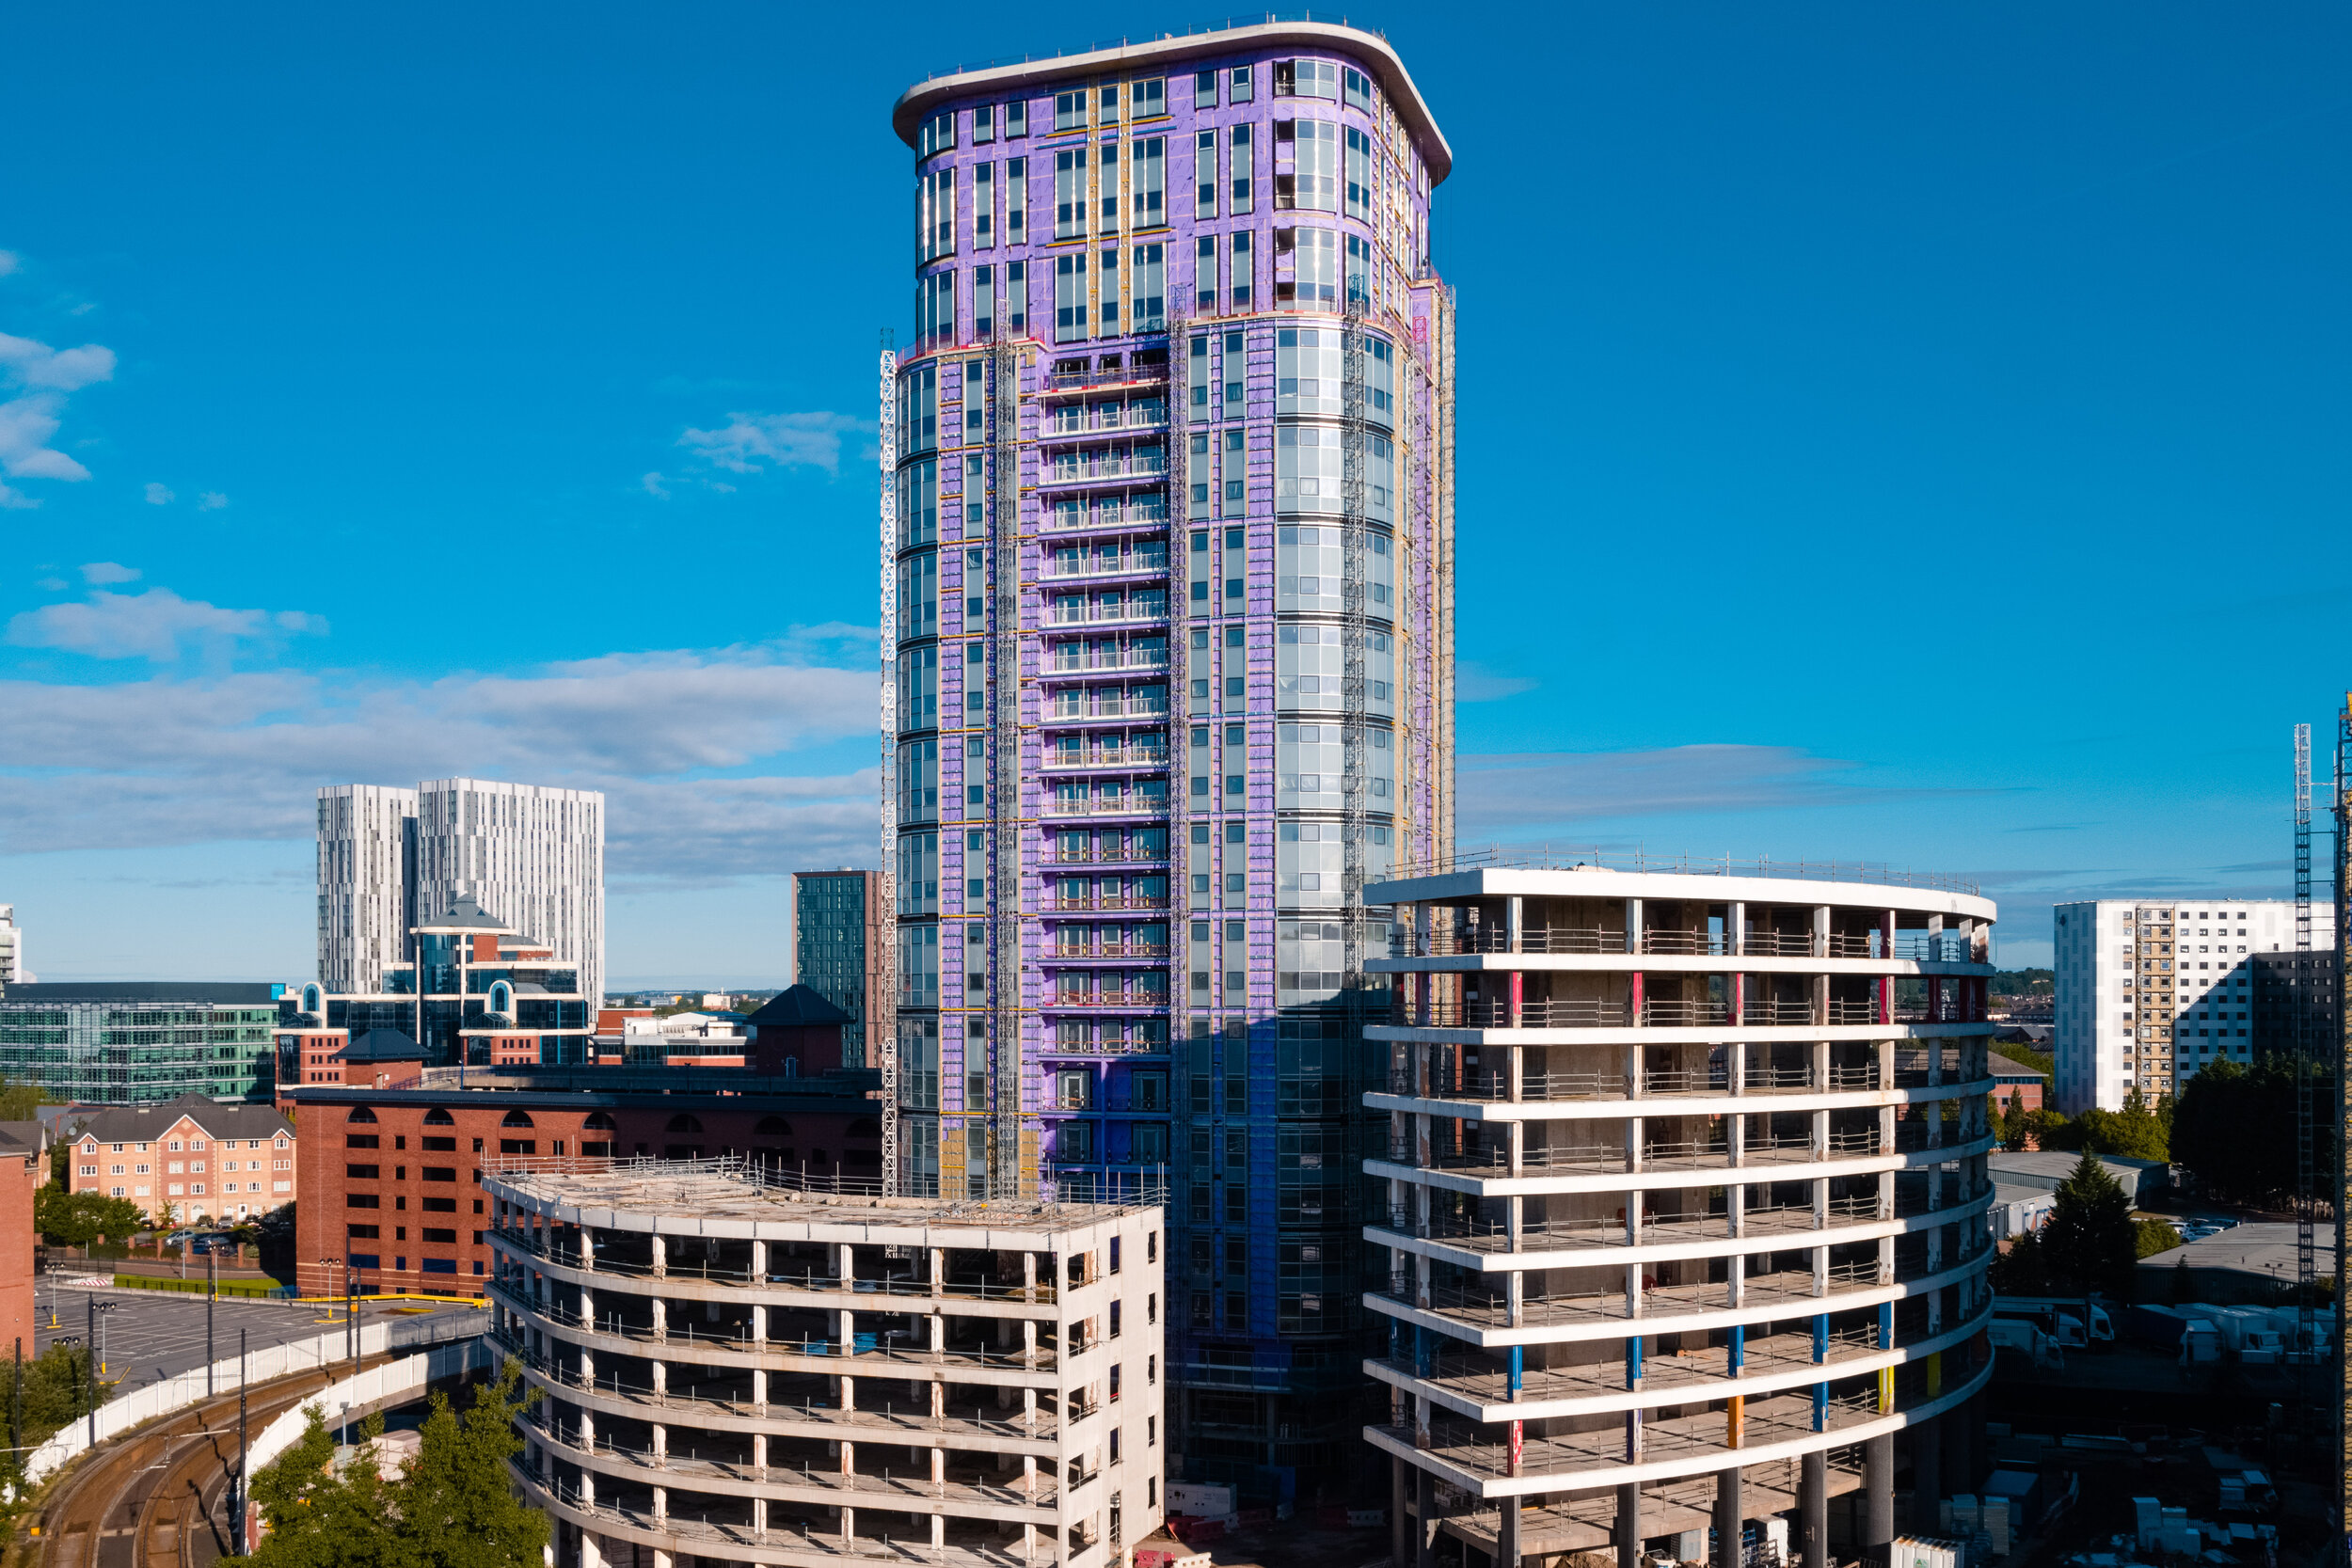 Northill Apartments   Fortis Quays – Manchester